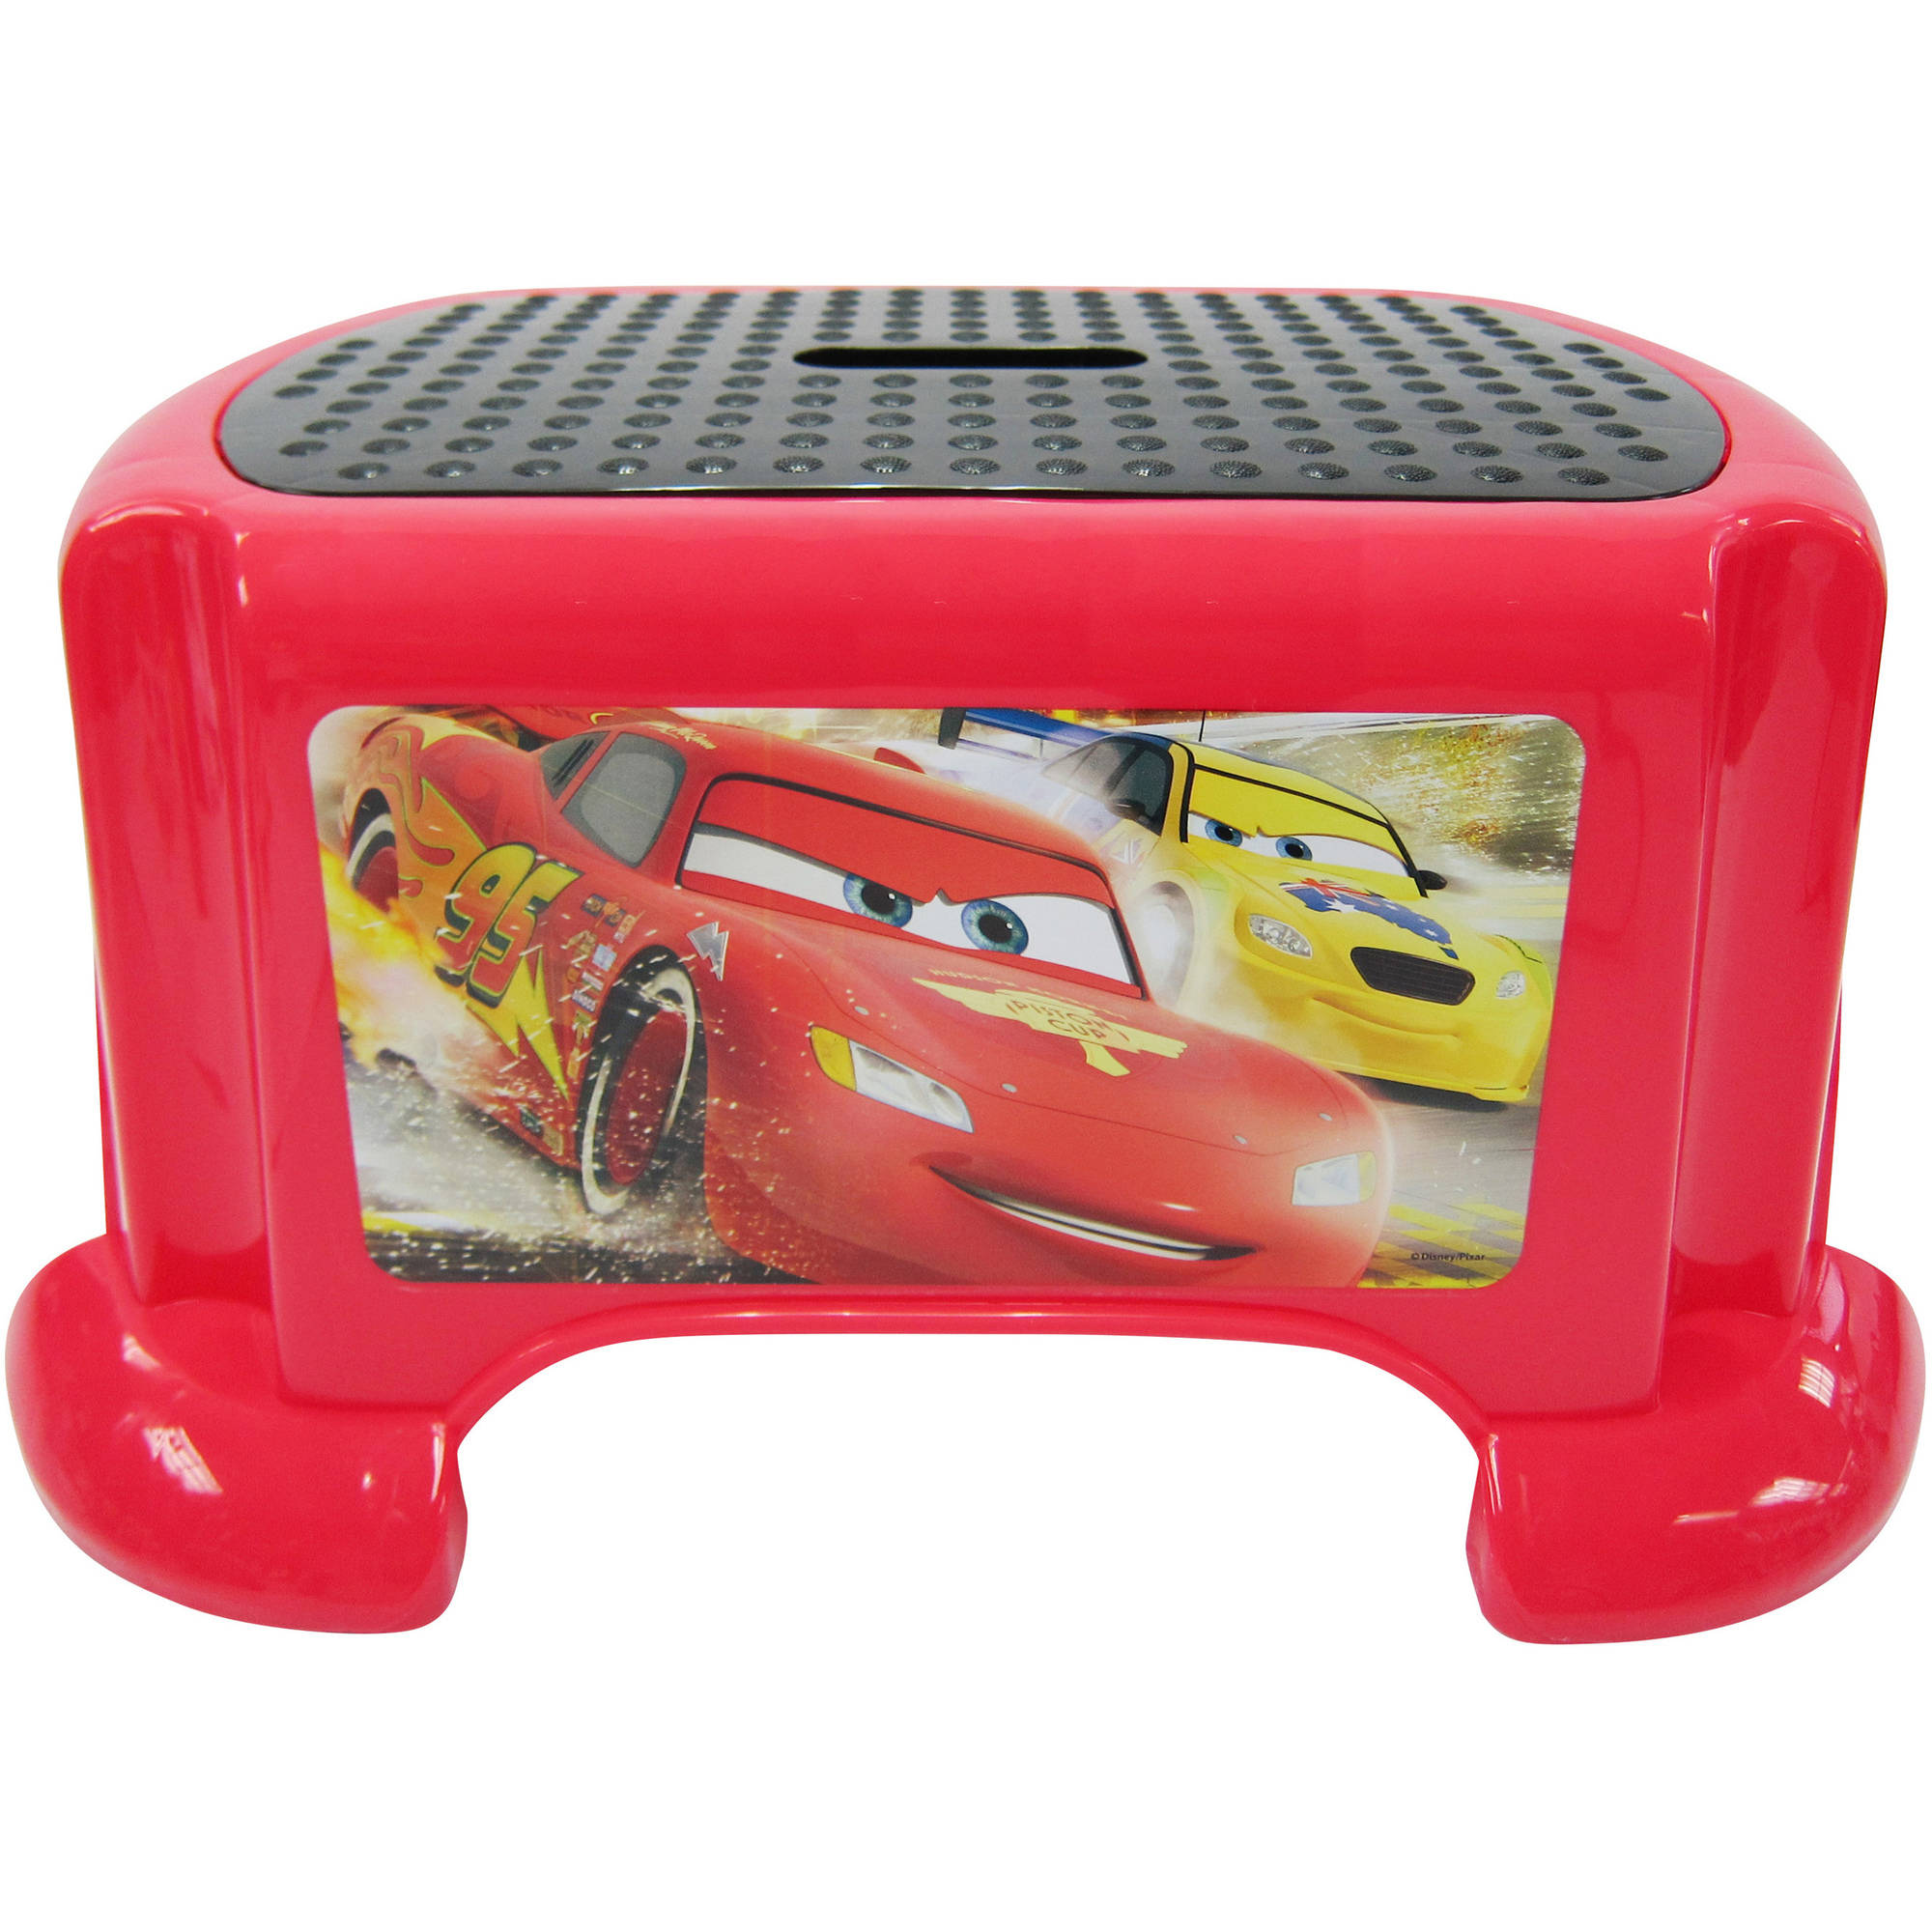 039897930671 Upc Cars Racers Edge Step Stool Toy Upc